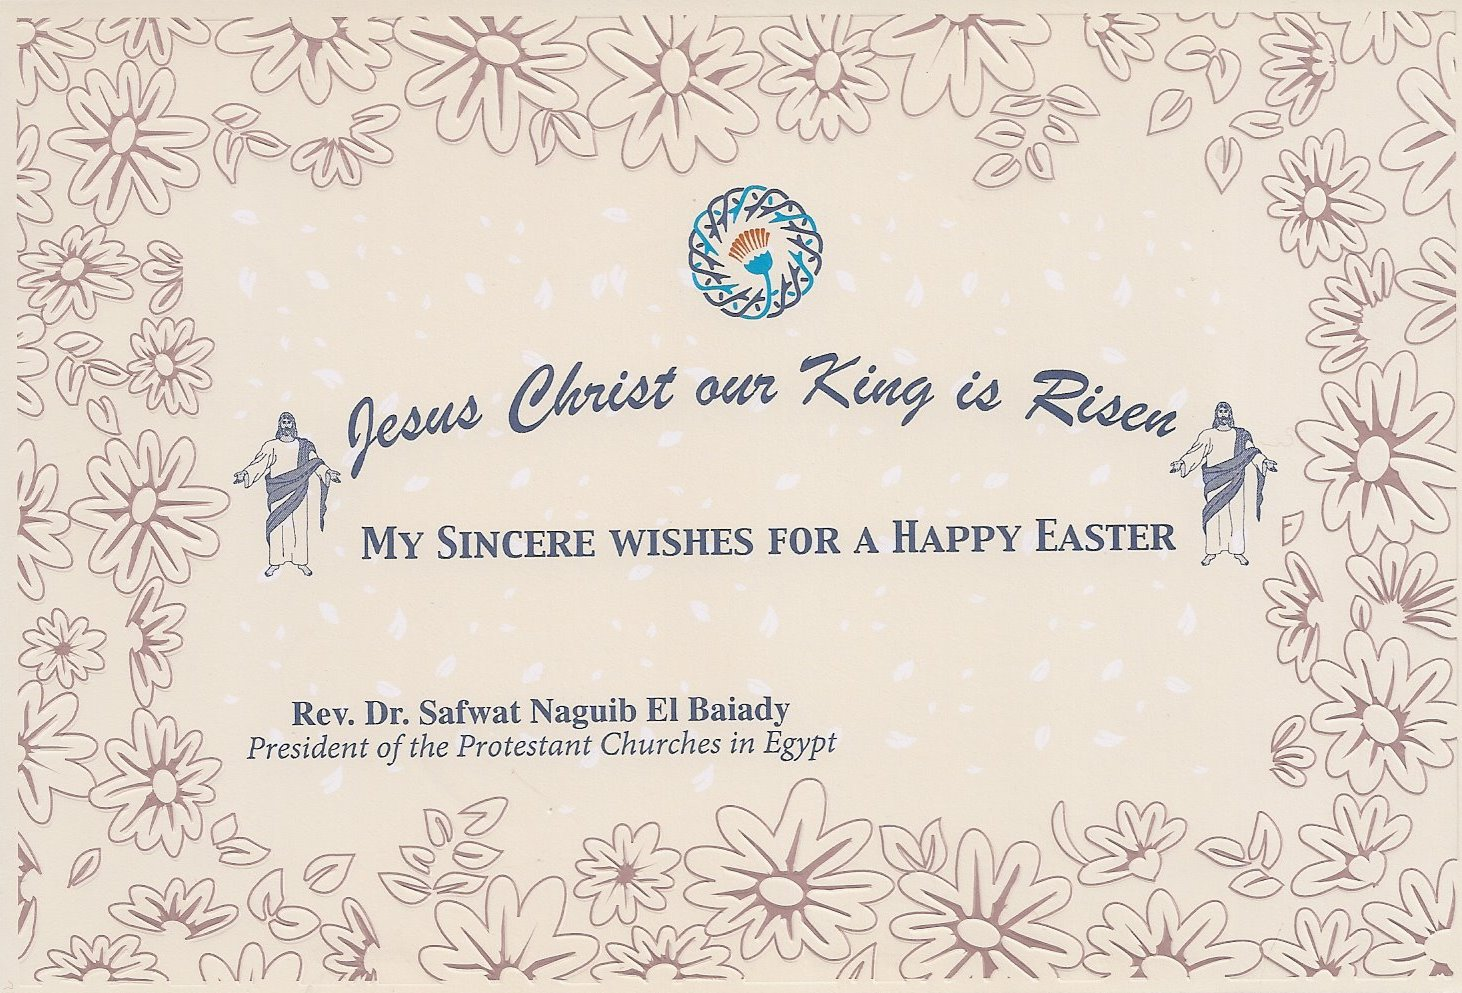 easter greetings from church leaders st andrew s united church of